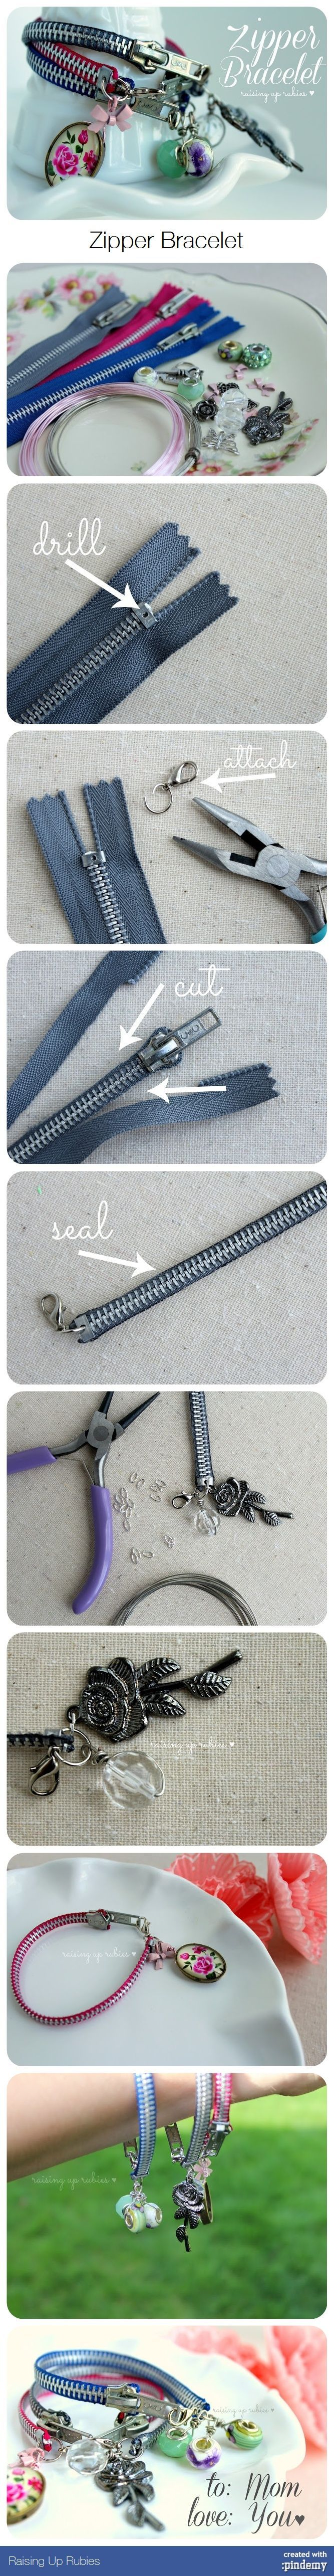 Zipper Bracelet via pindemy.com